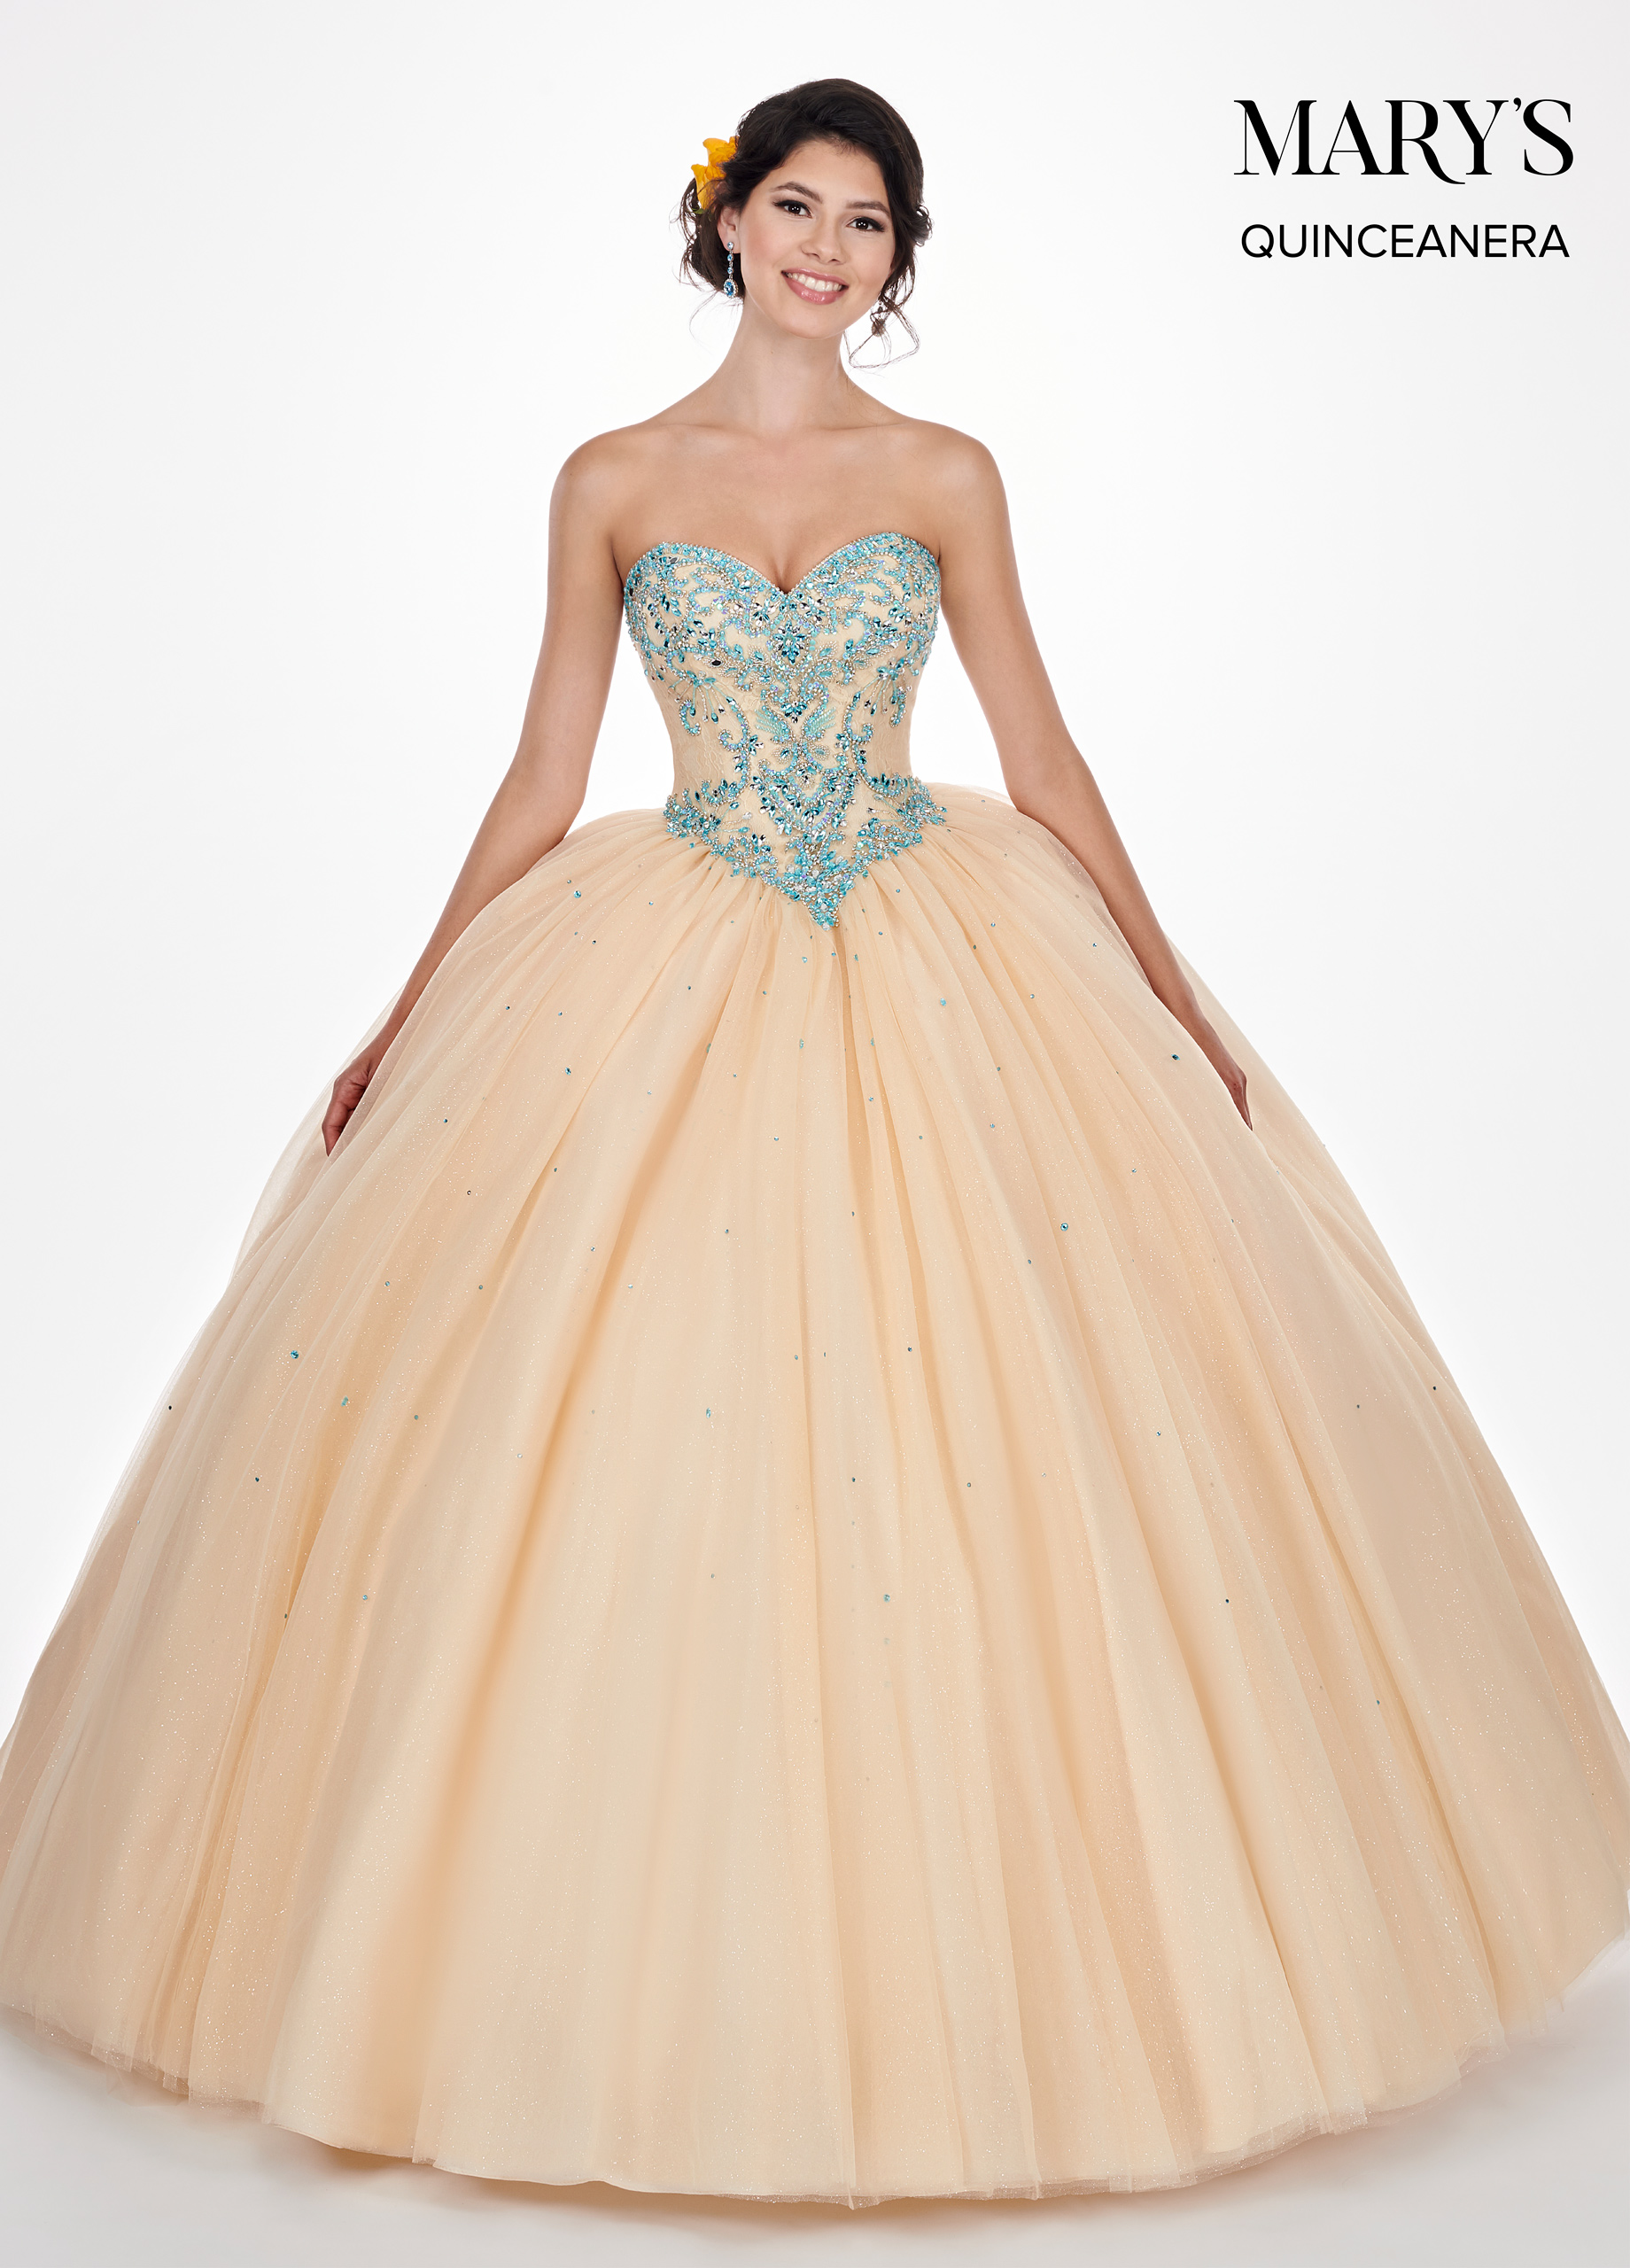 Marys Quinceanera Dresses | Mary's Quinceanera | Style - MQ1040